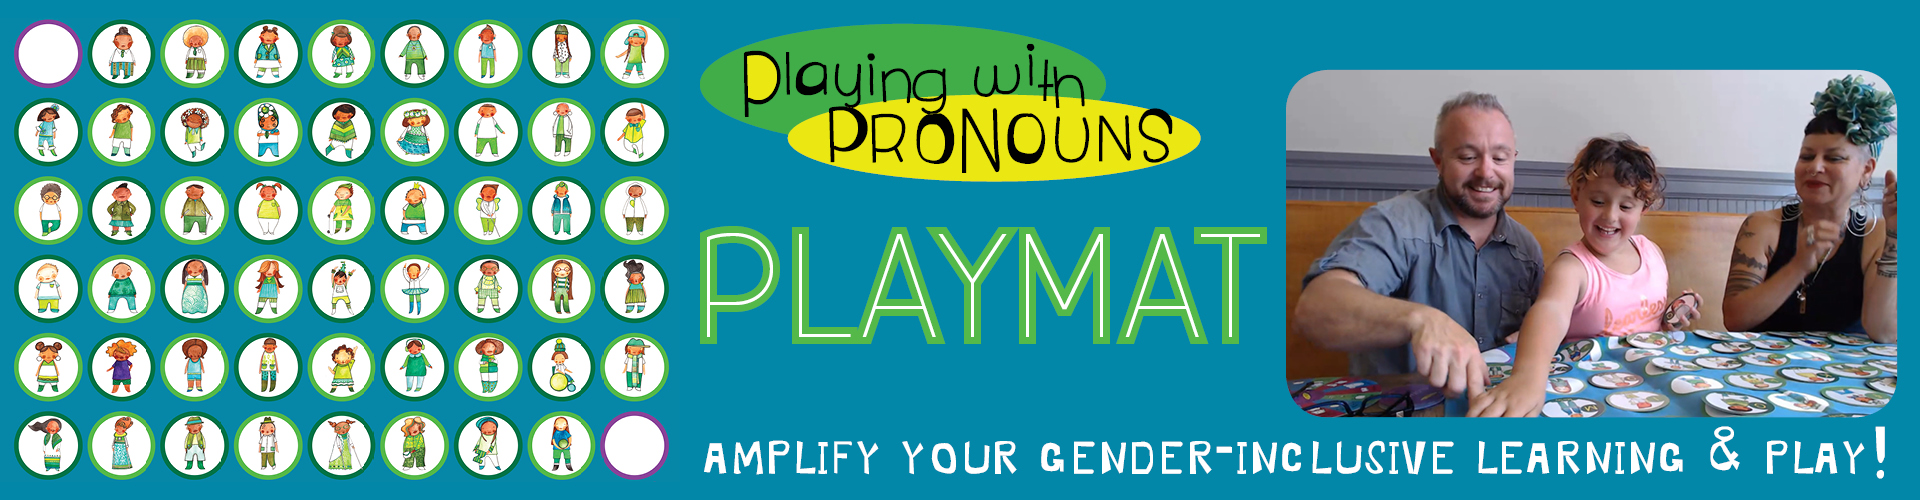 Playing with Pronouns Playmat